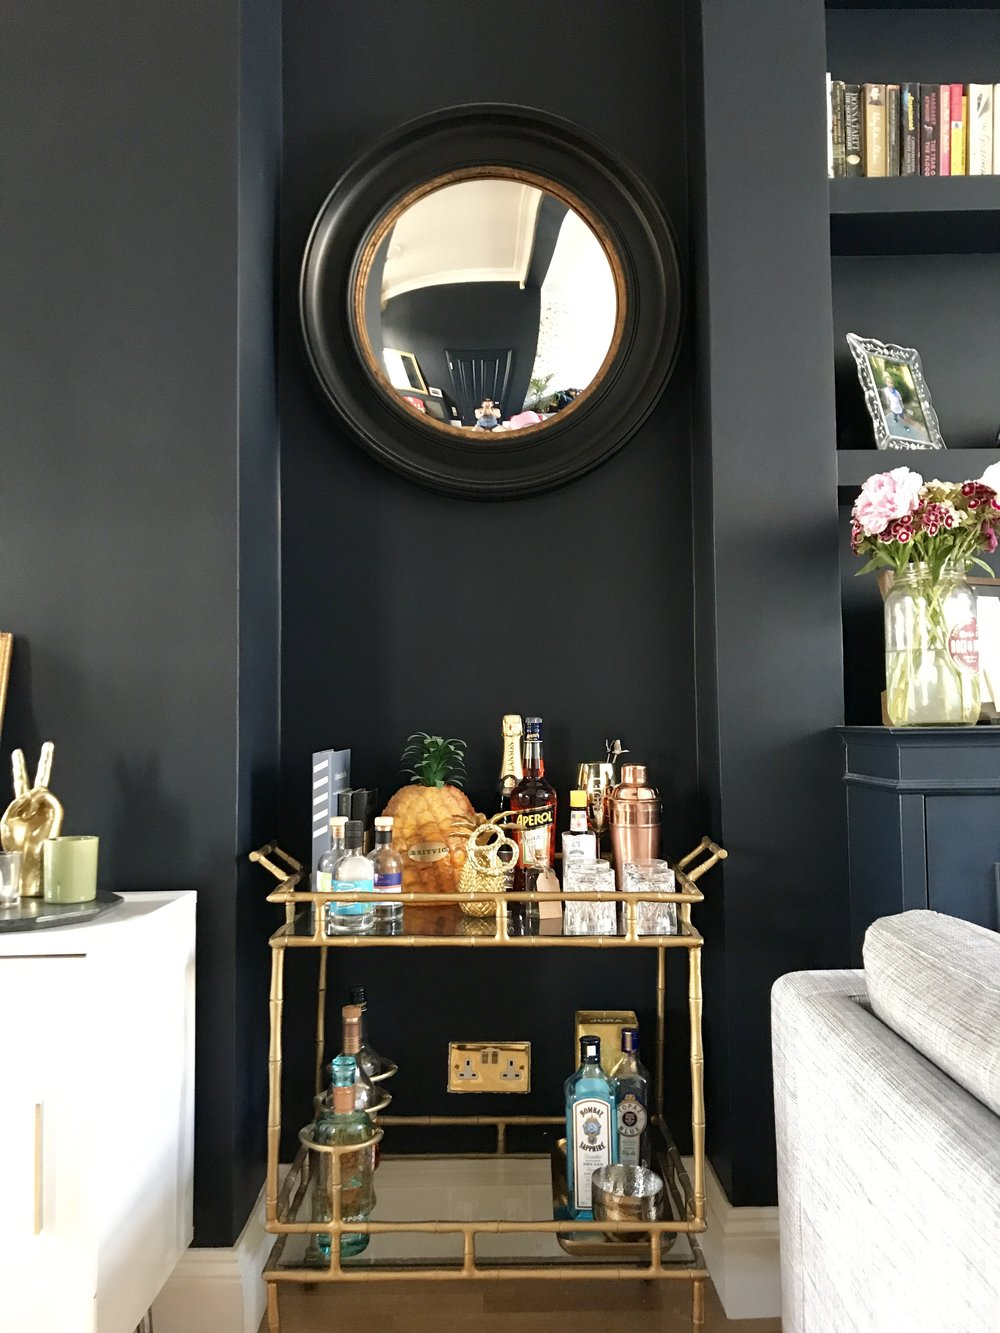 Mirror from Hurn & Hurn, Drinks trolley and gold pineapple from Oliver Bonas, Hammered metal tray and bowls from Sainsbury's